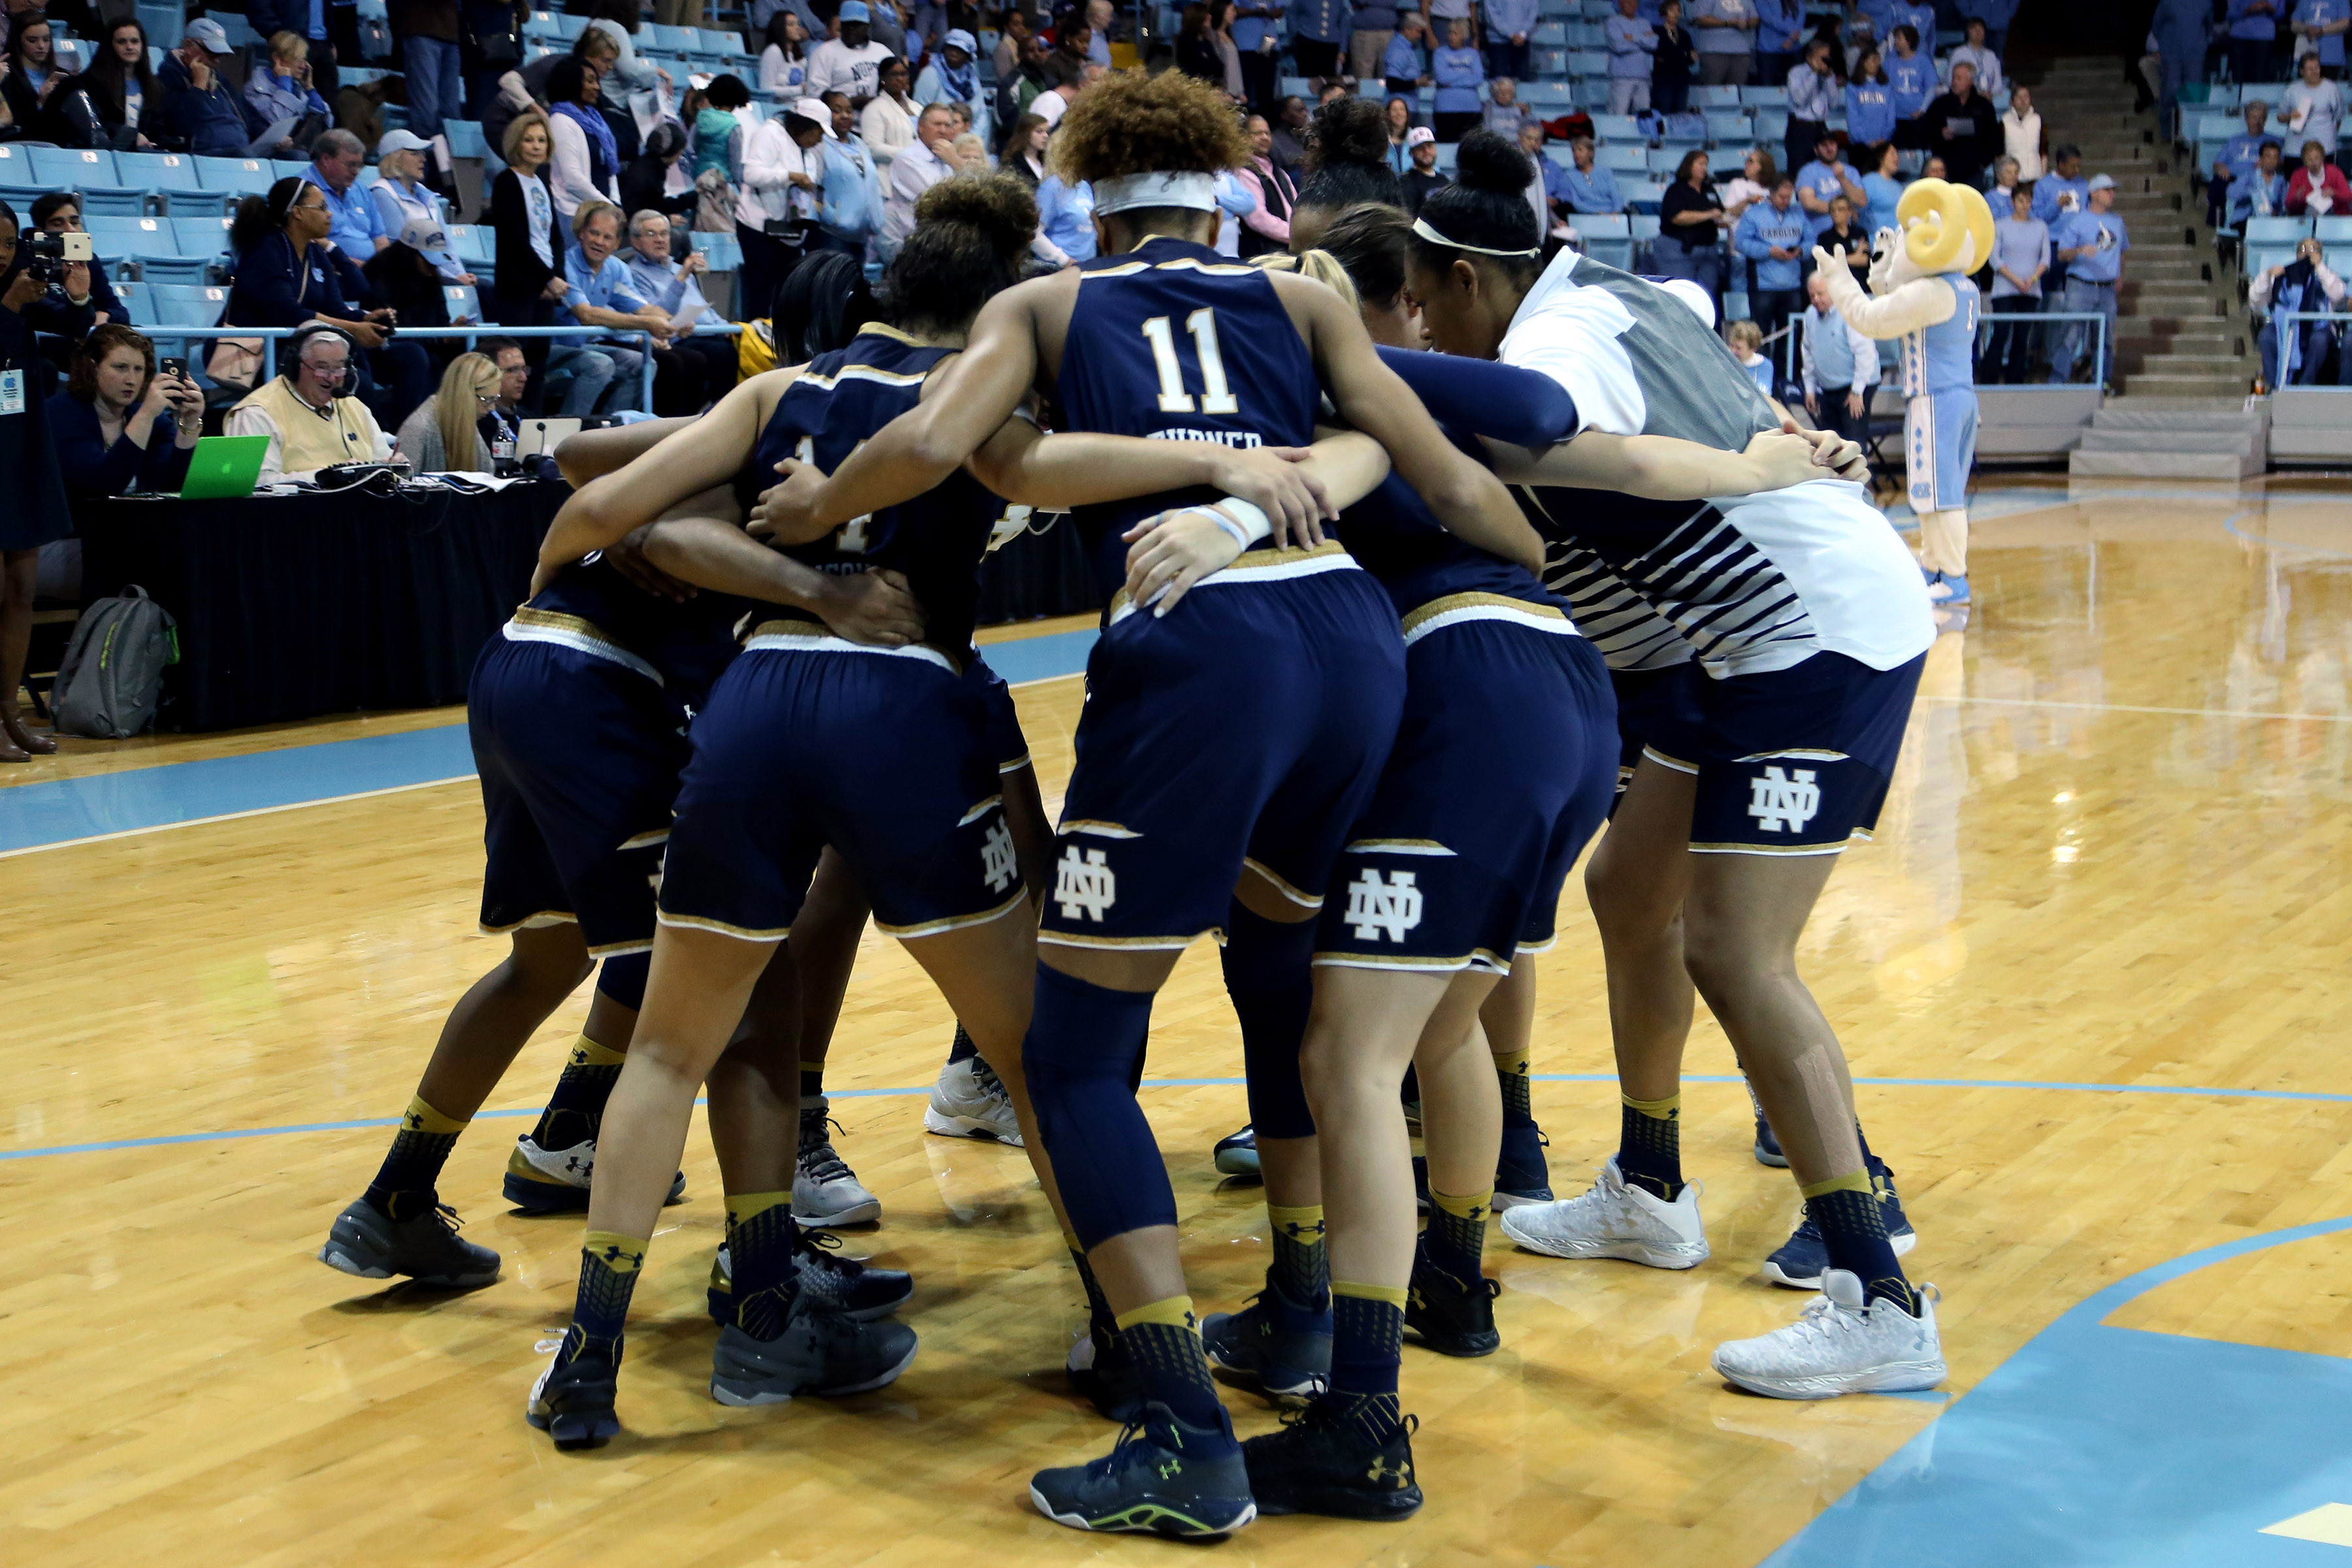 College Basketball Rankings 2017 Projected Week 11 Top 25: 2017-18 ACC Women's Basketball Preview: Analysis